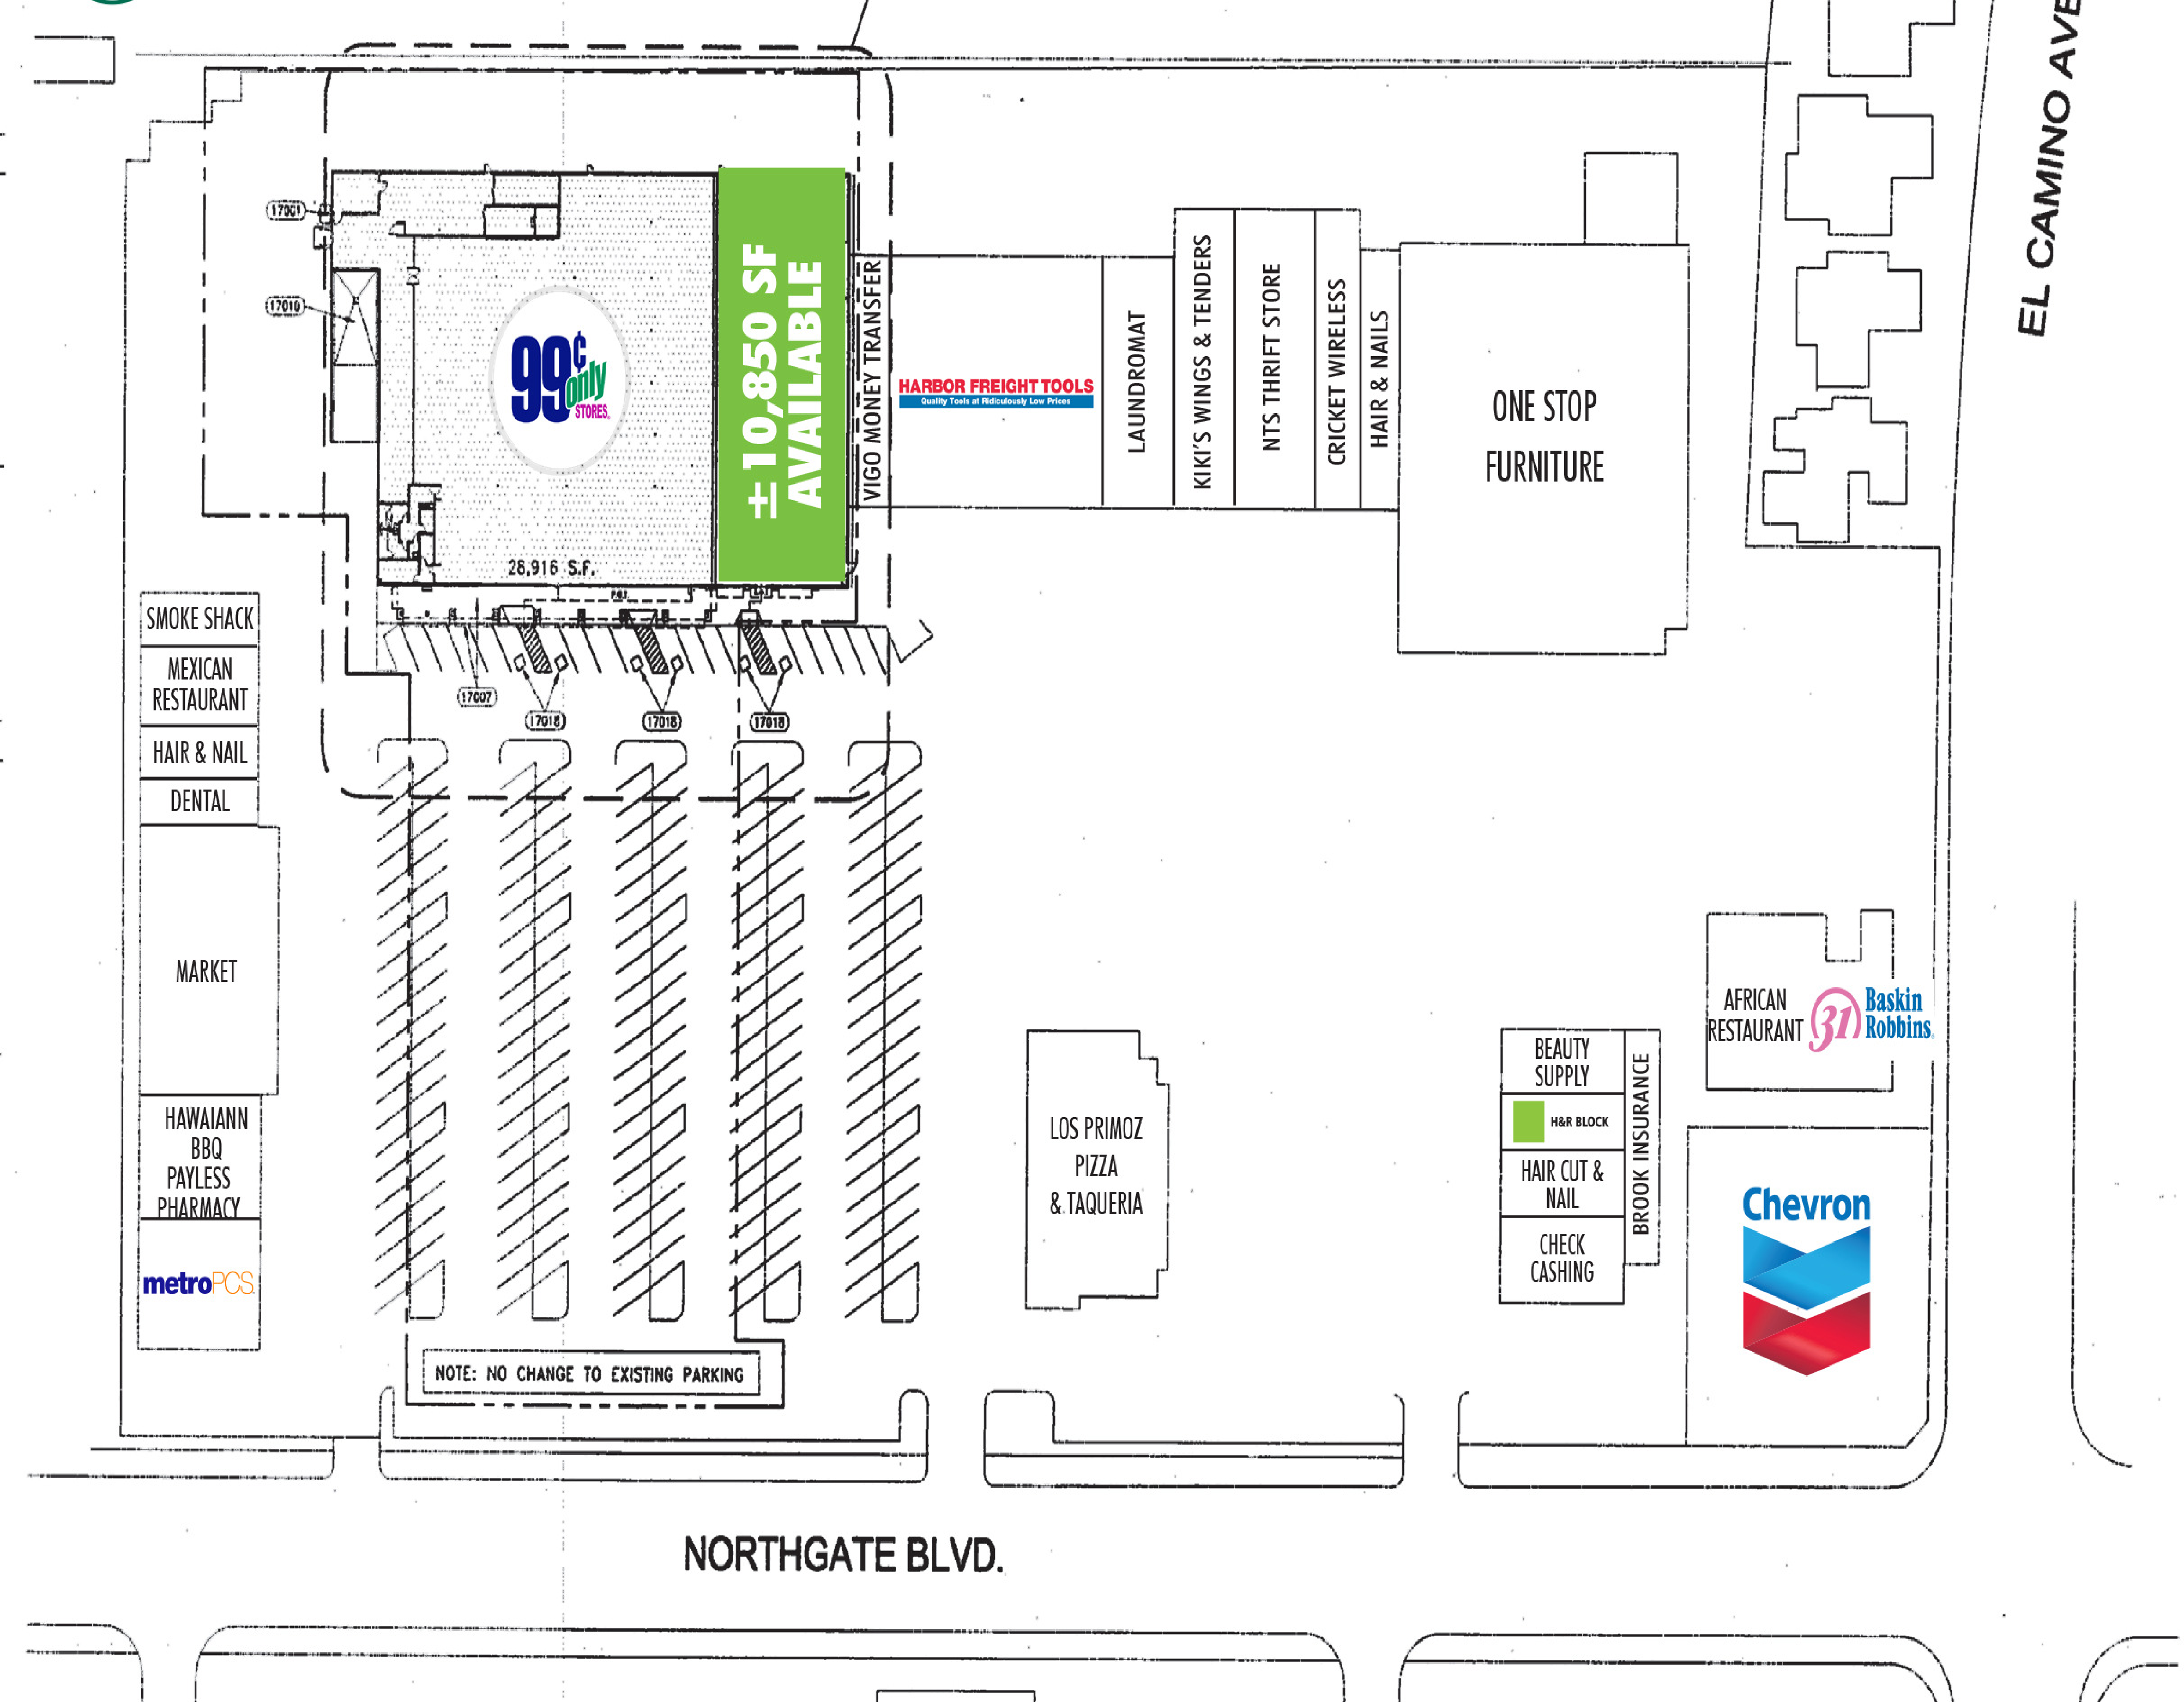 Northgate Shopping Center: site plan